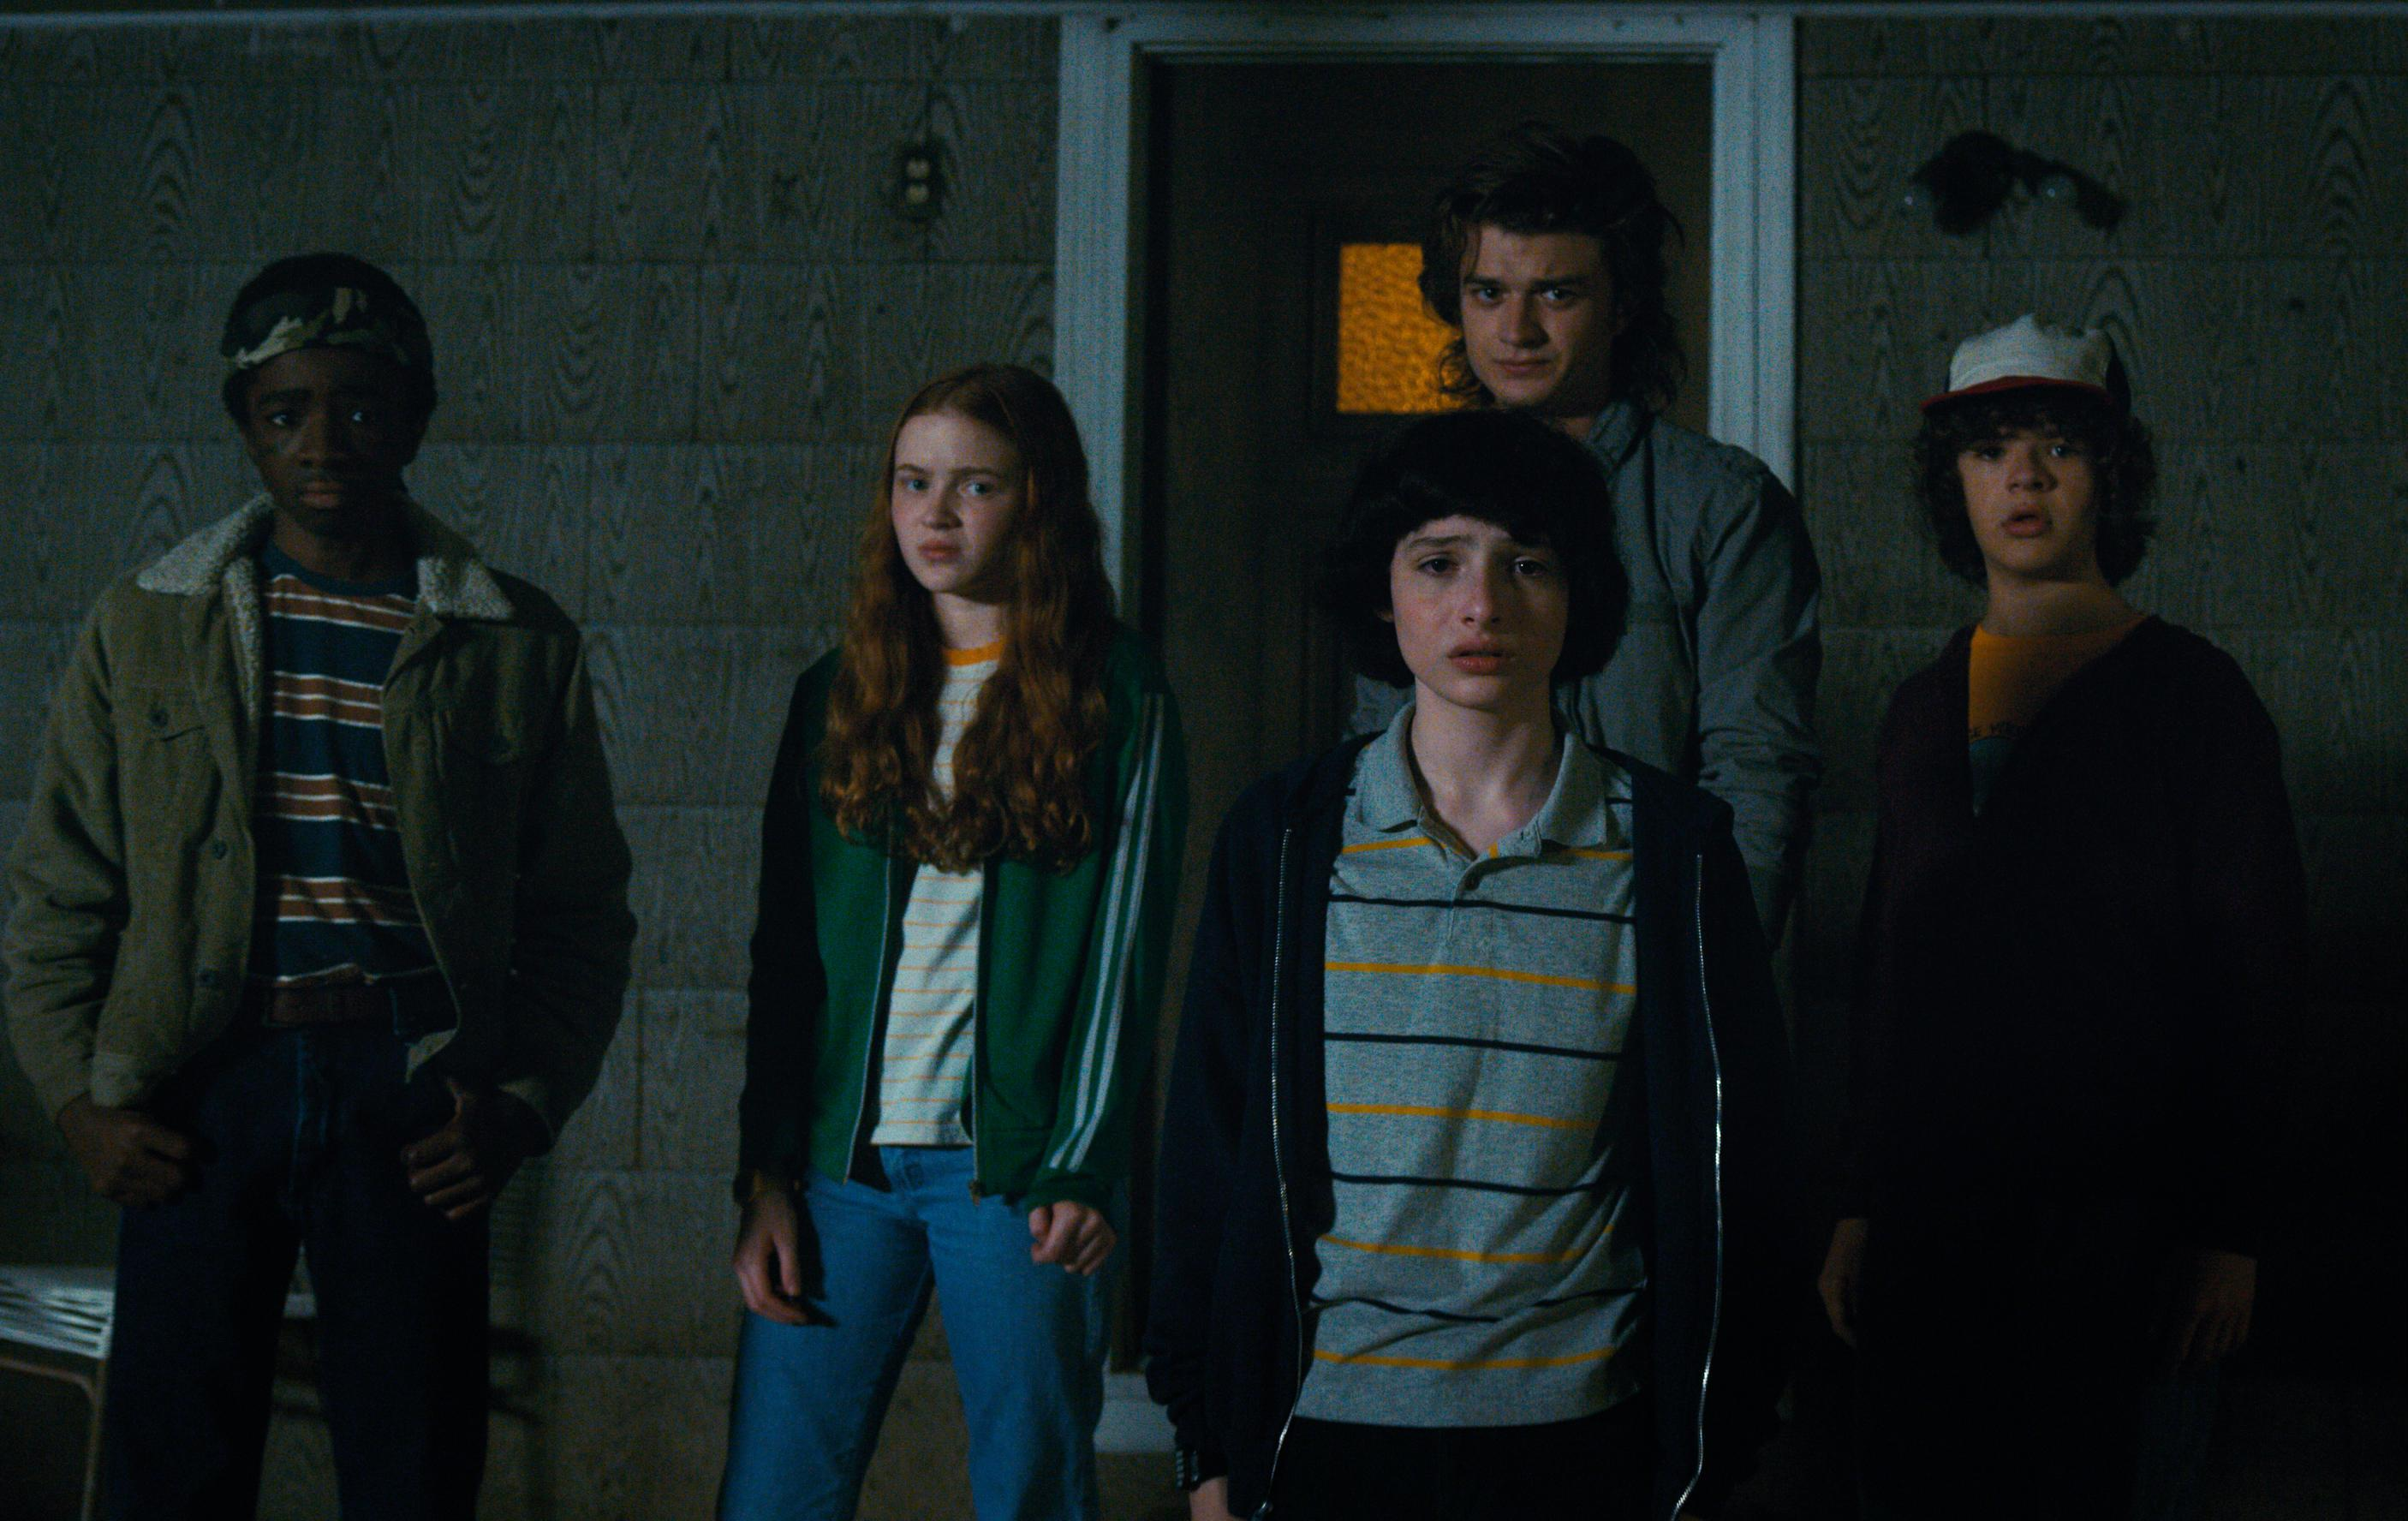 Netflix says 3rd season of 'Stranger Things' is officially happening